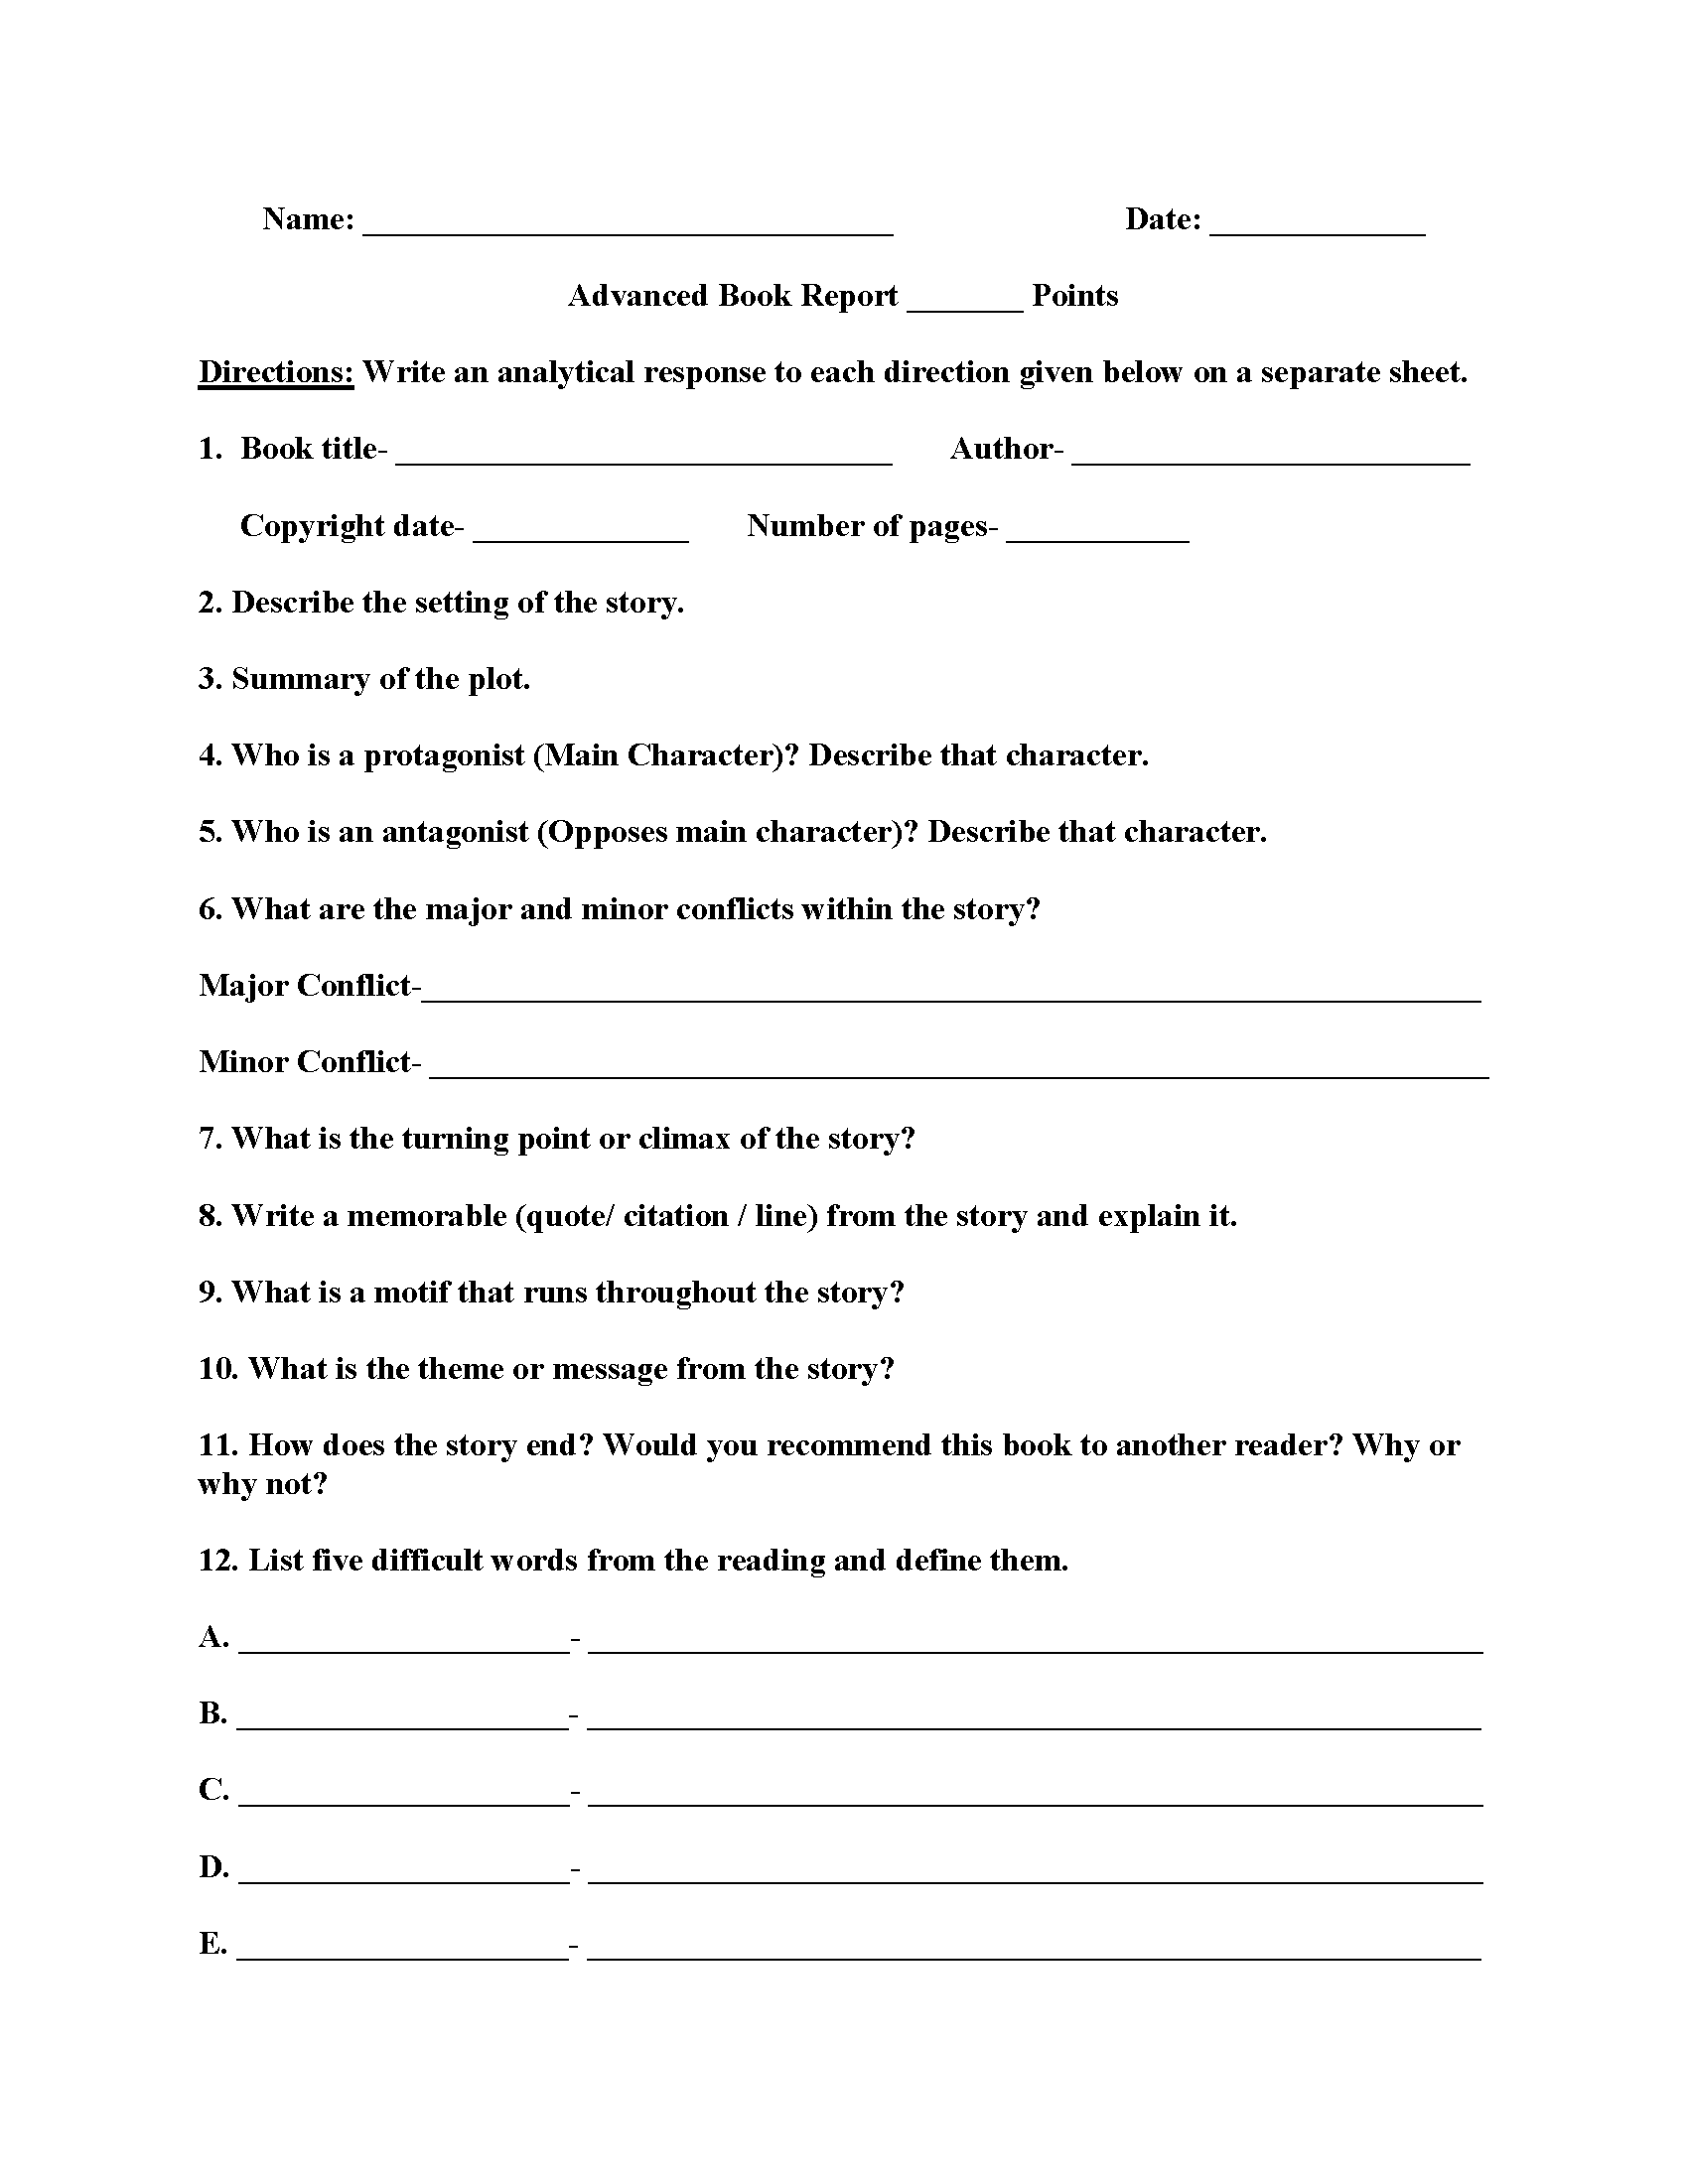 Advanced Book Report Worksheets